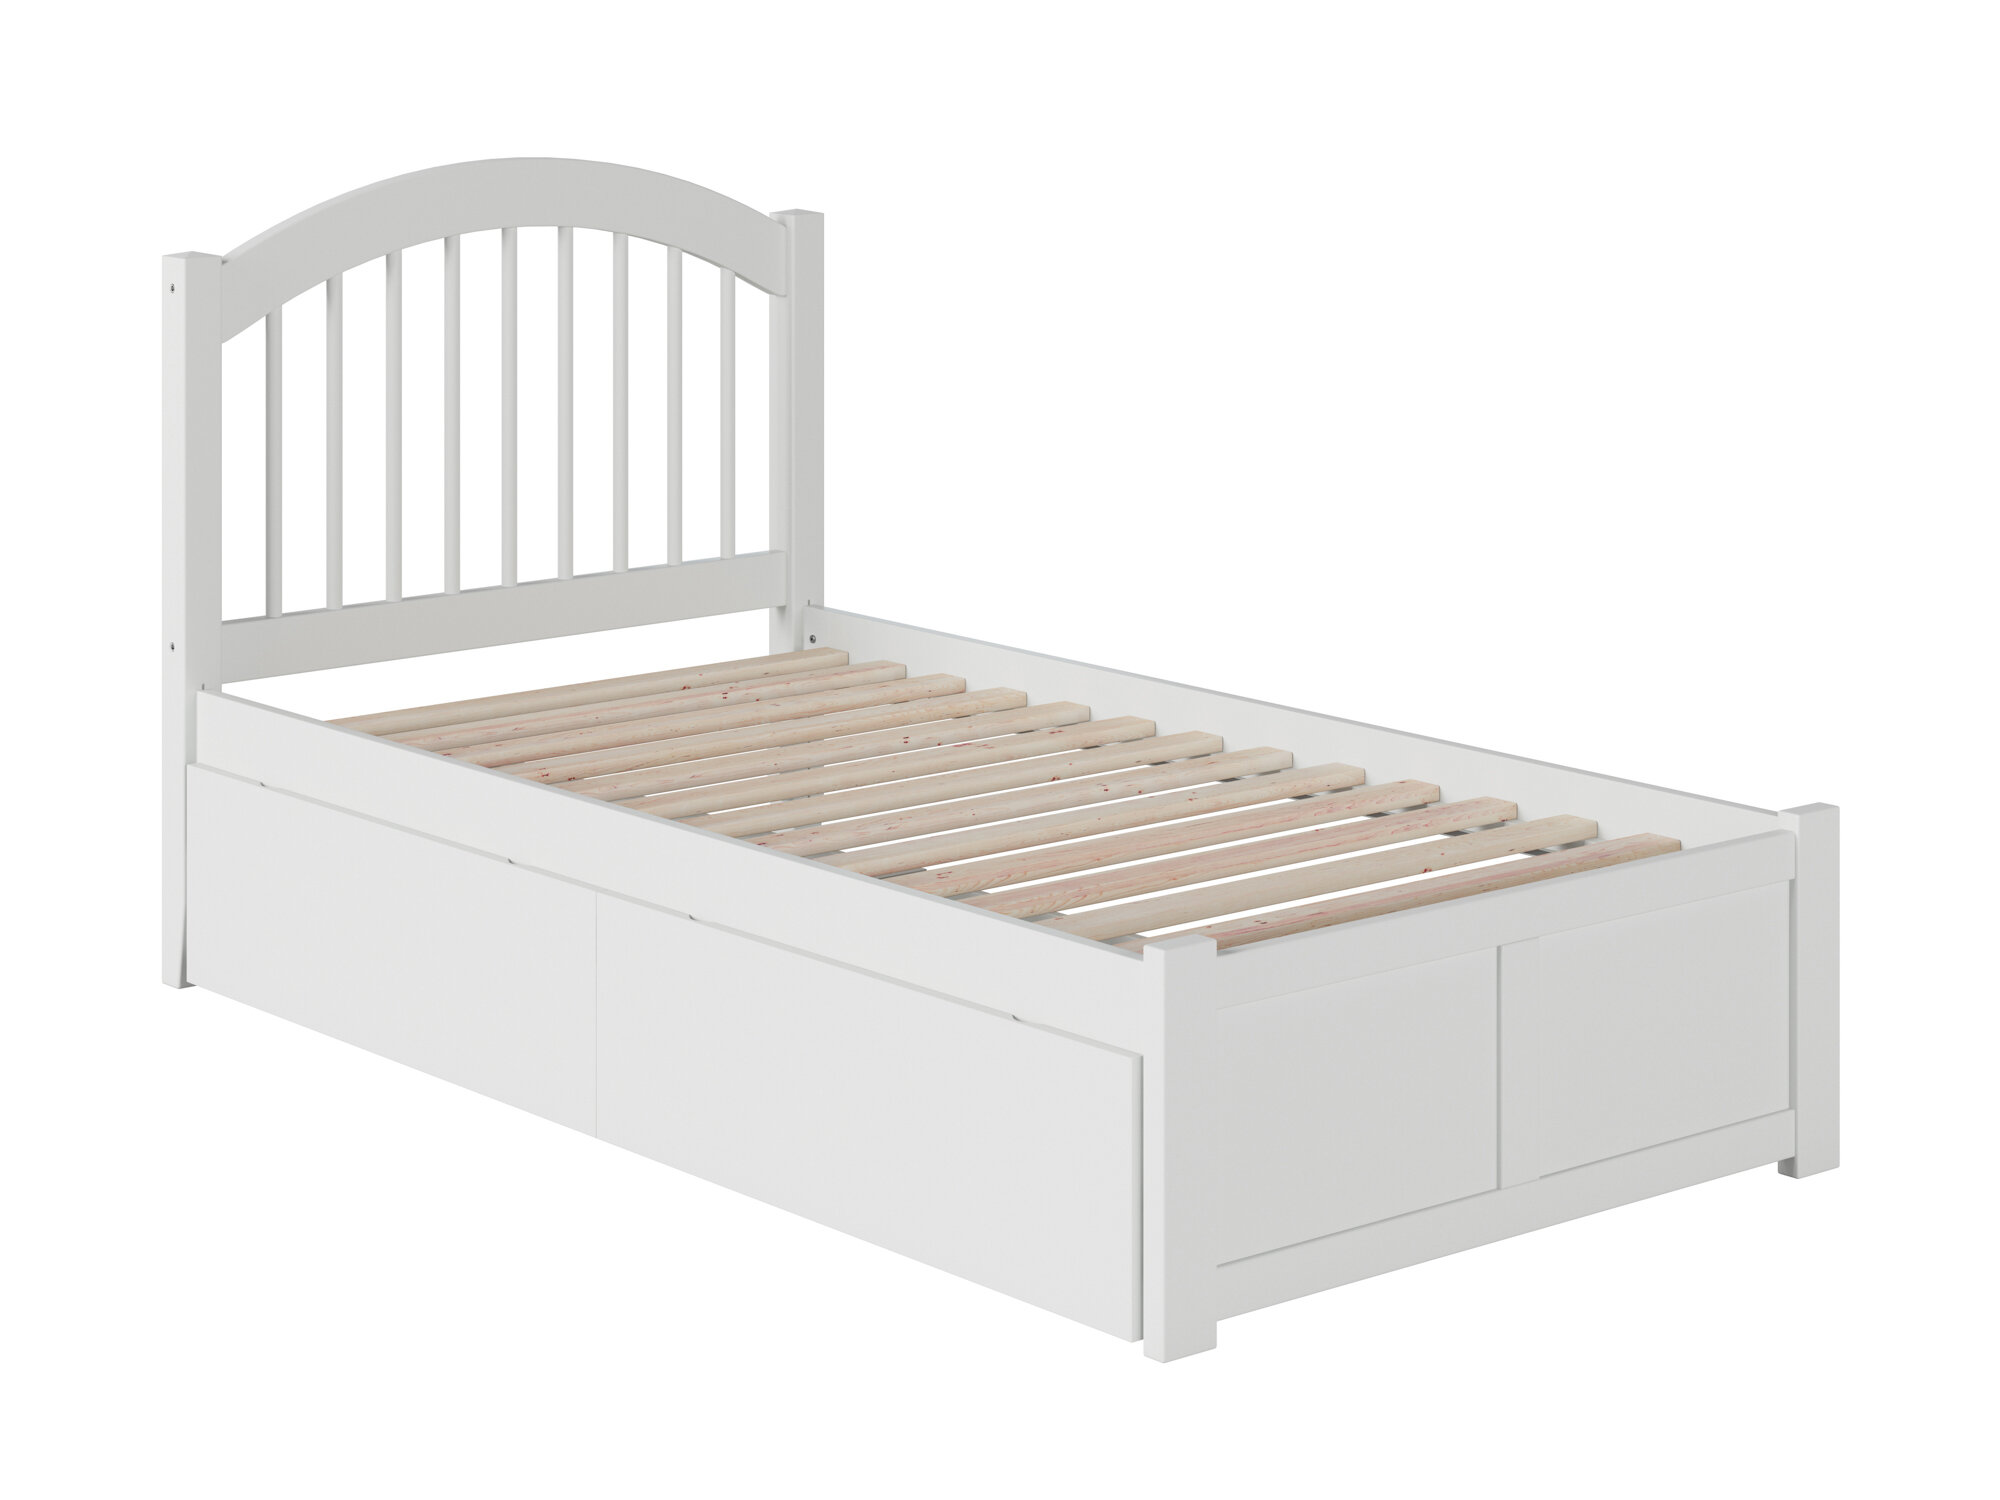 Picture of: Storage Included White Beds You Ll Love In 2020 Wayfair